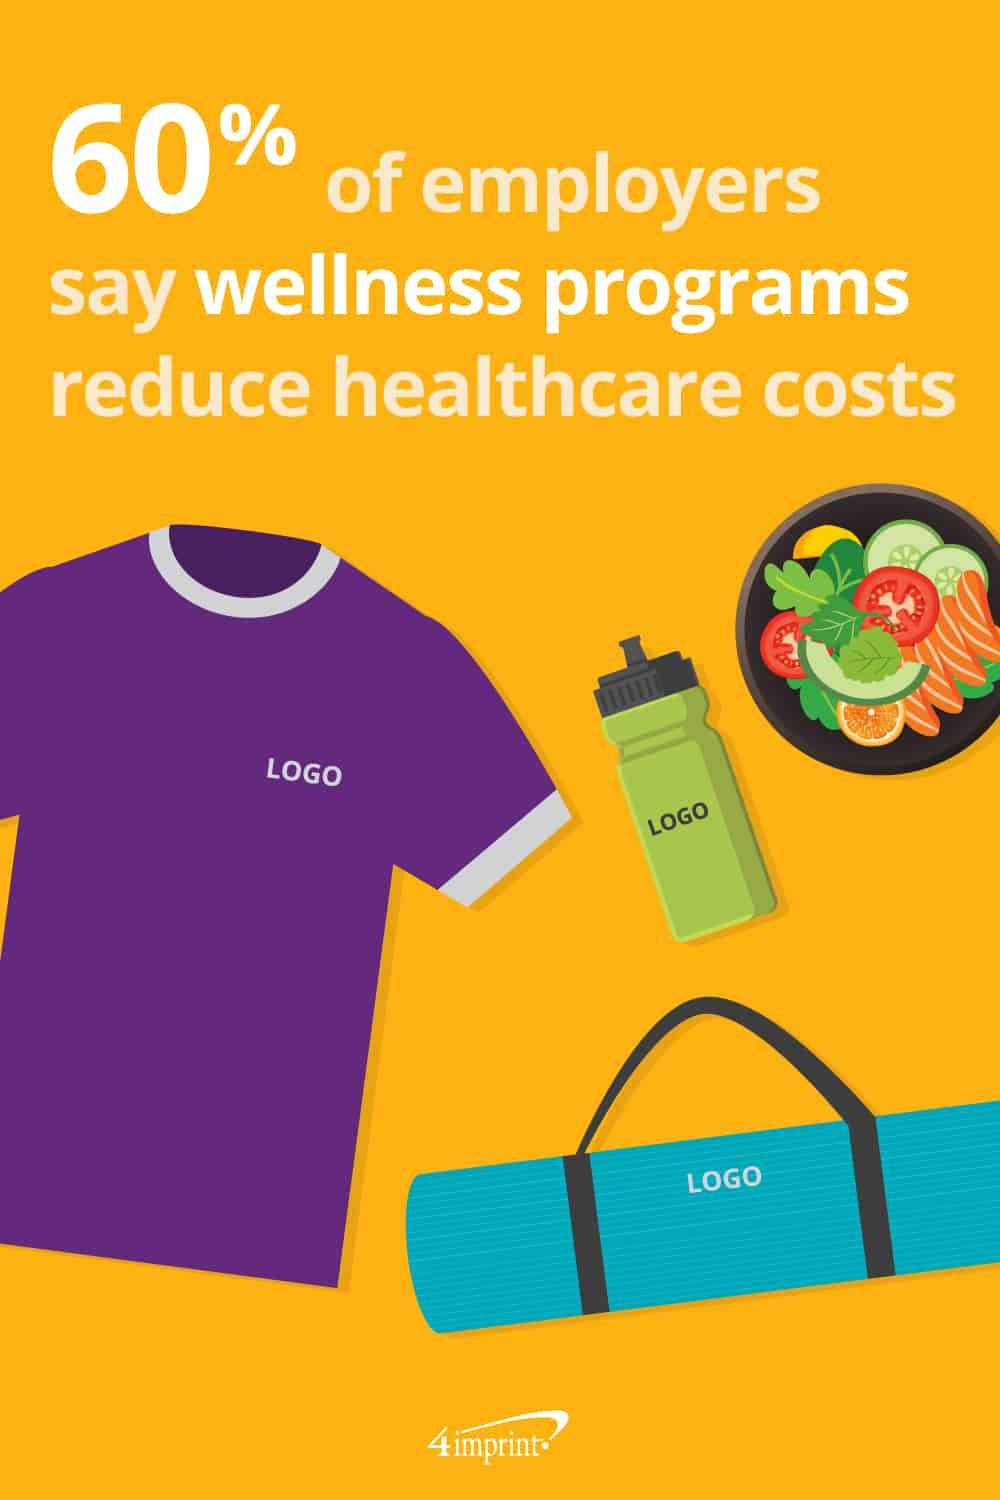 60% of employers say wellness programs reduce healthcare costs - pinable graphic about wellness giveaways